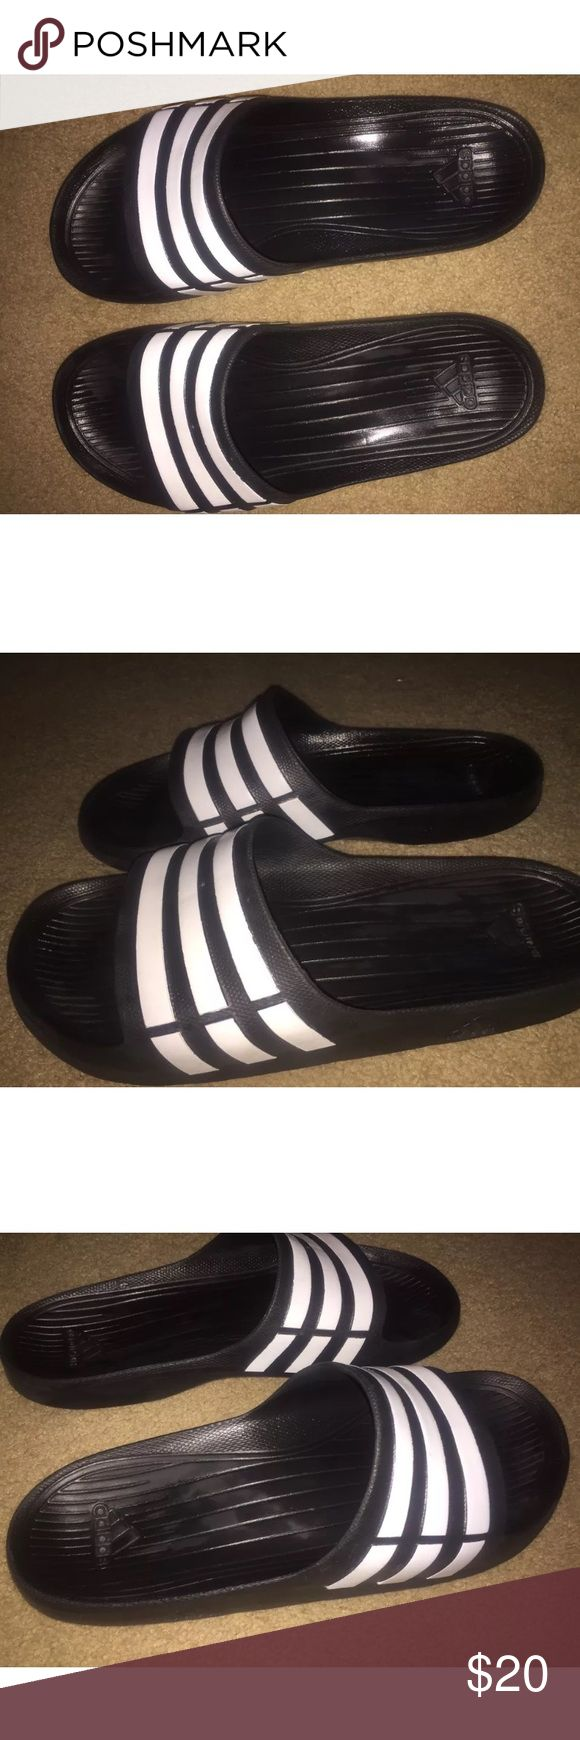 Addidas Sandals Size 11 men. Slightly when but still good condition . Adidas Shoes Sandals & Flip-Flops